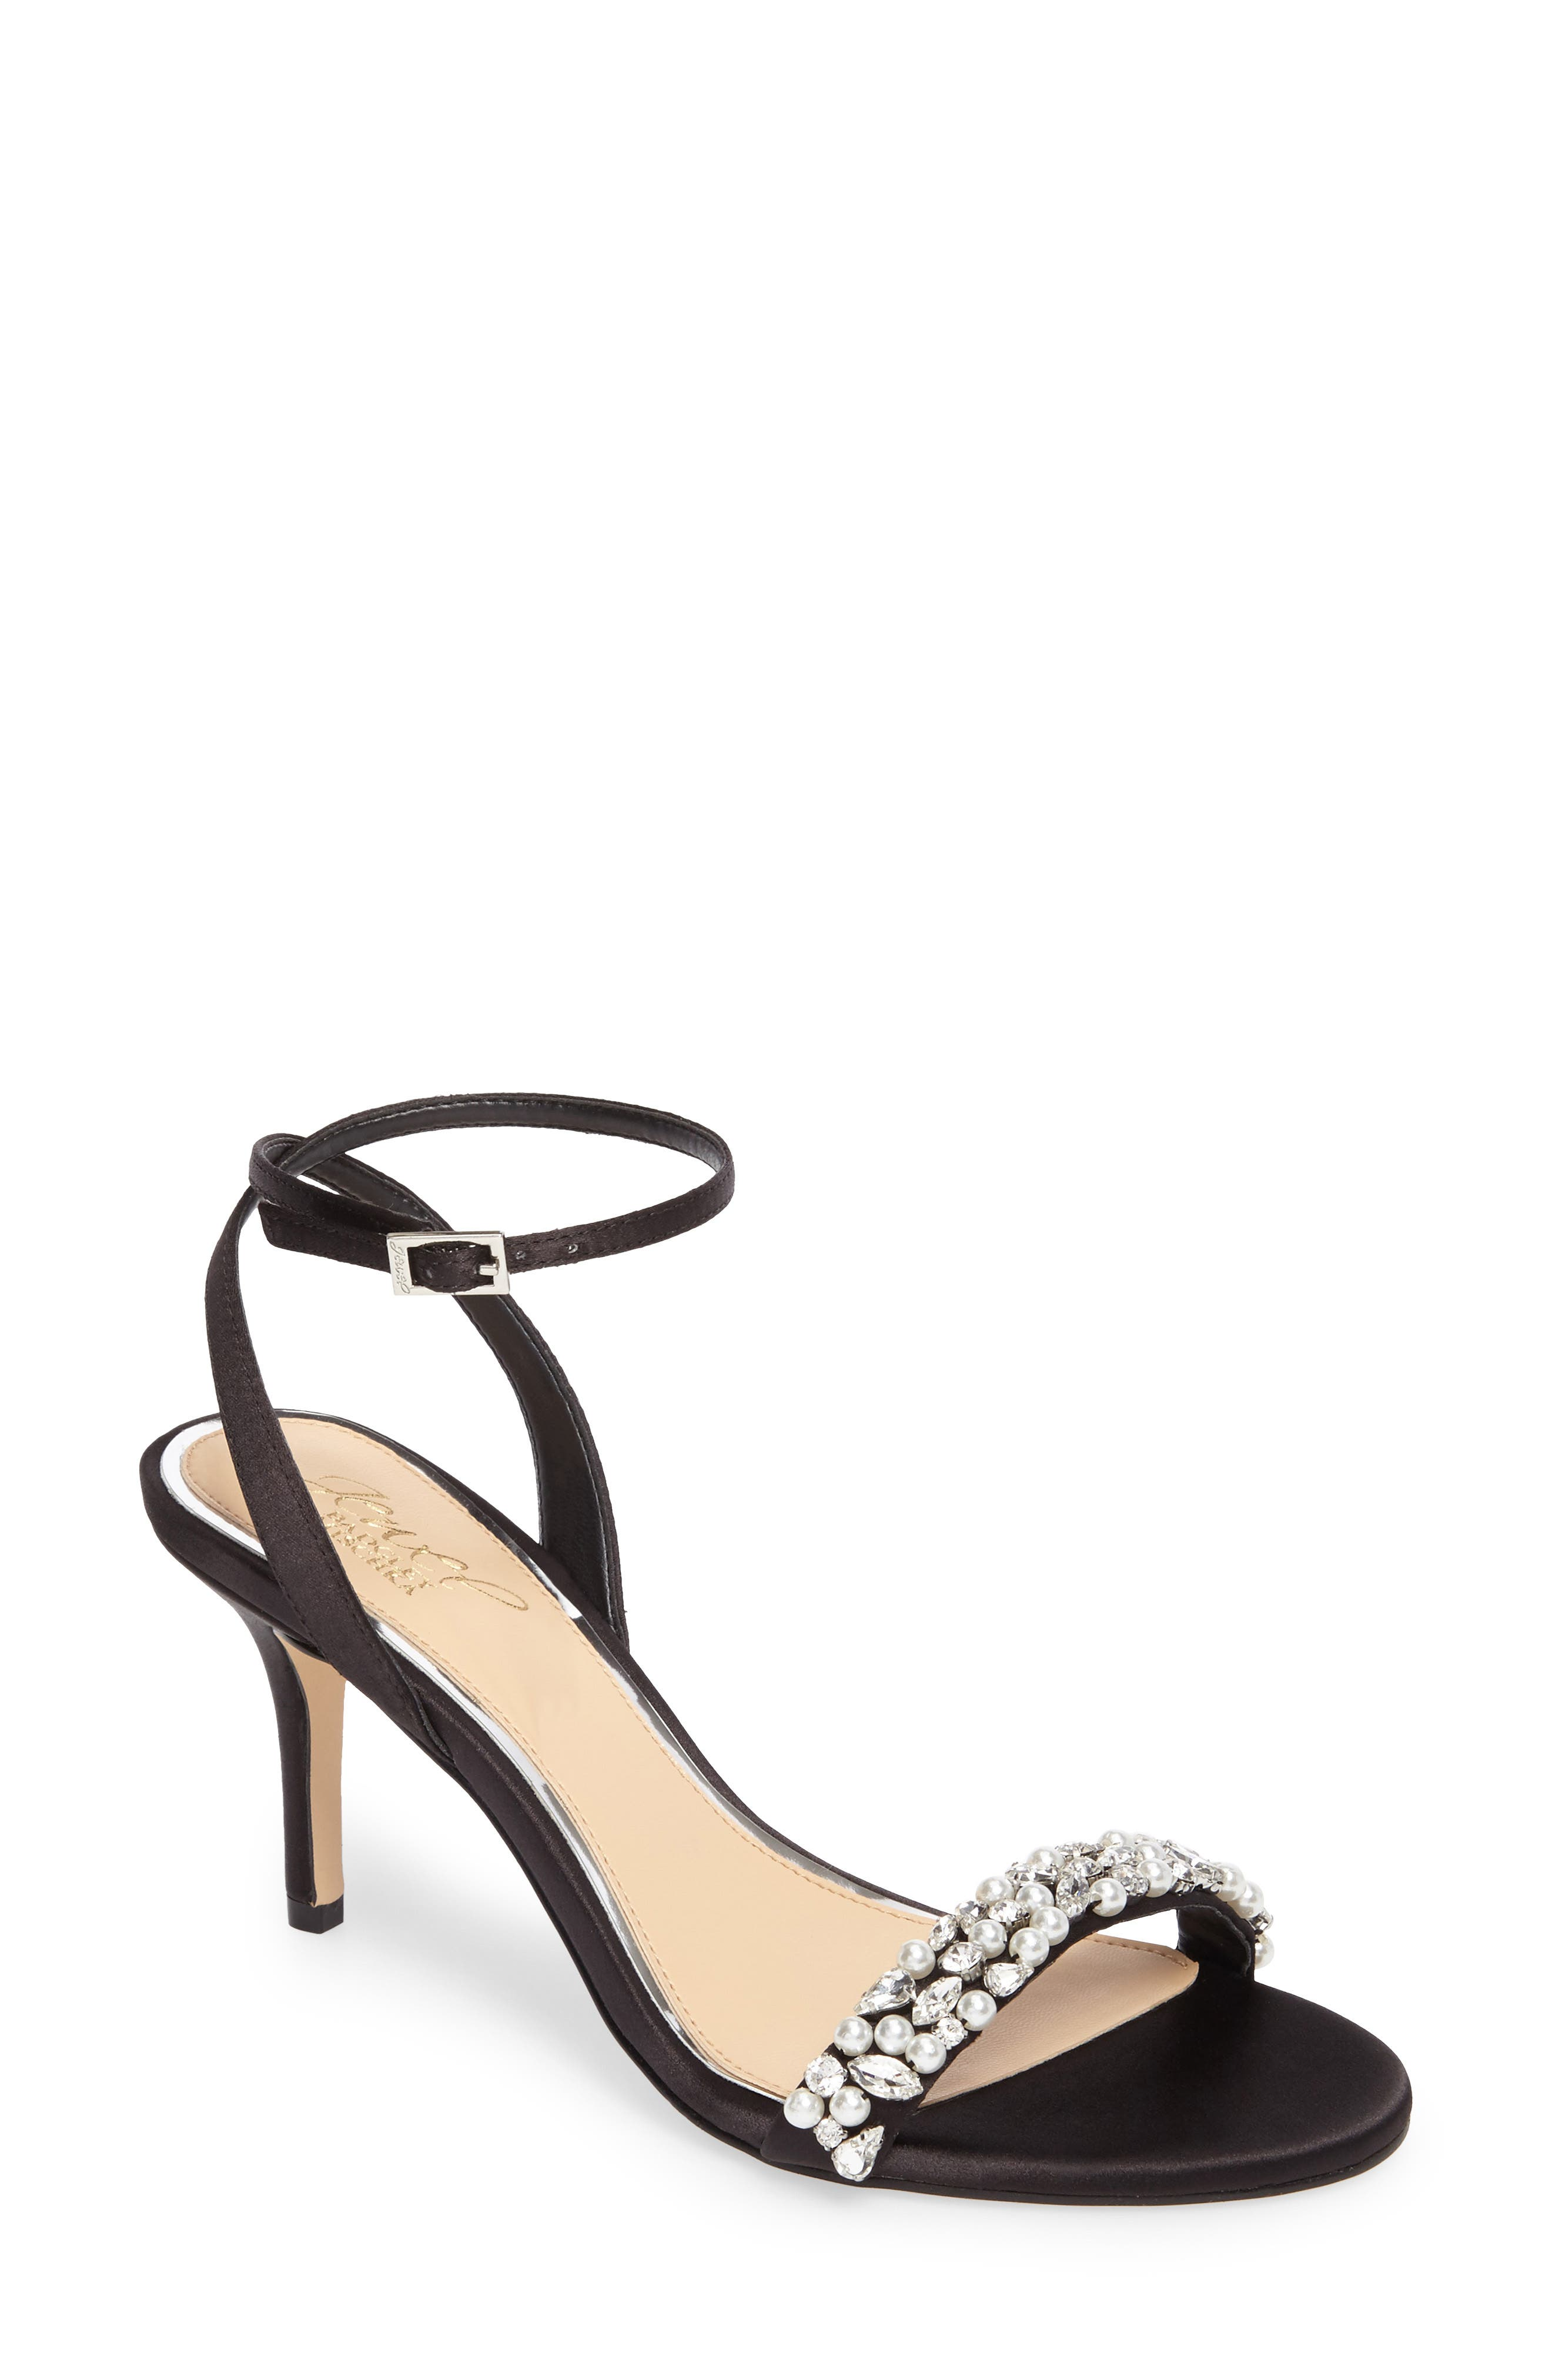 Jewel by Badgley Mischka Theodora Ankle Strap Sandal (Women)